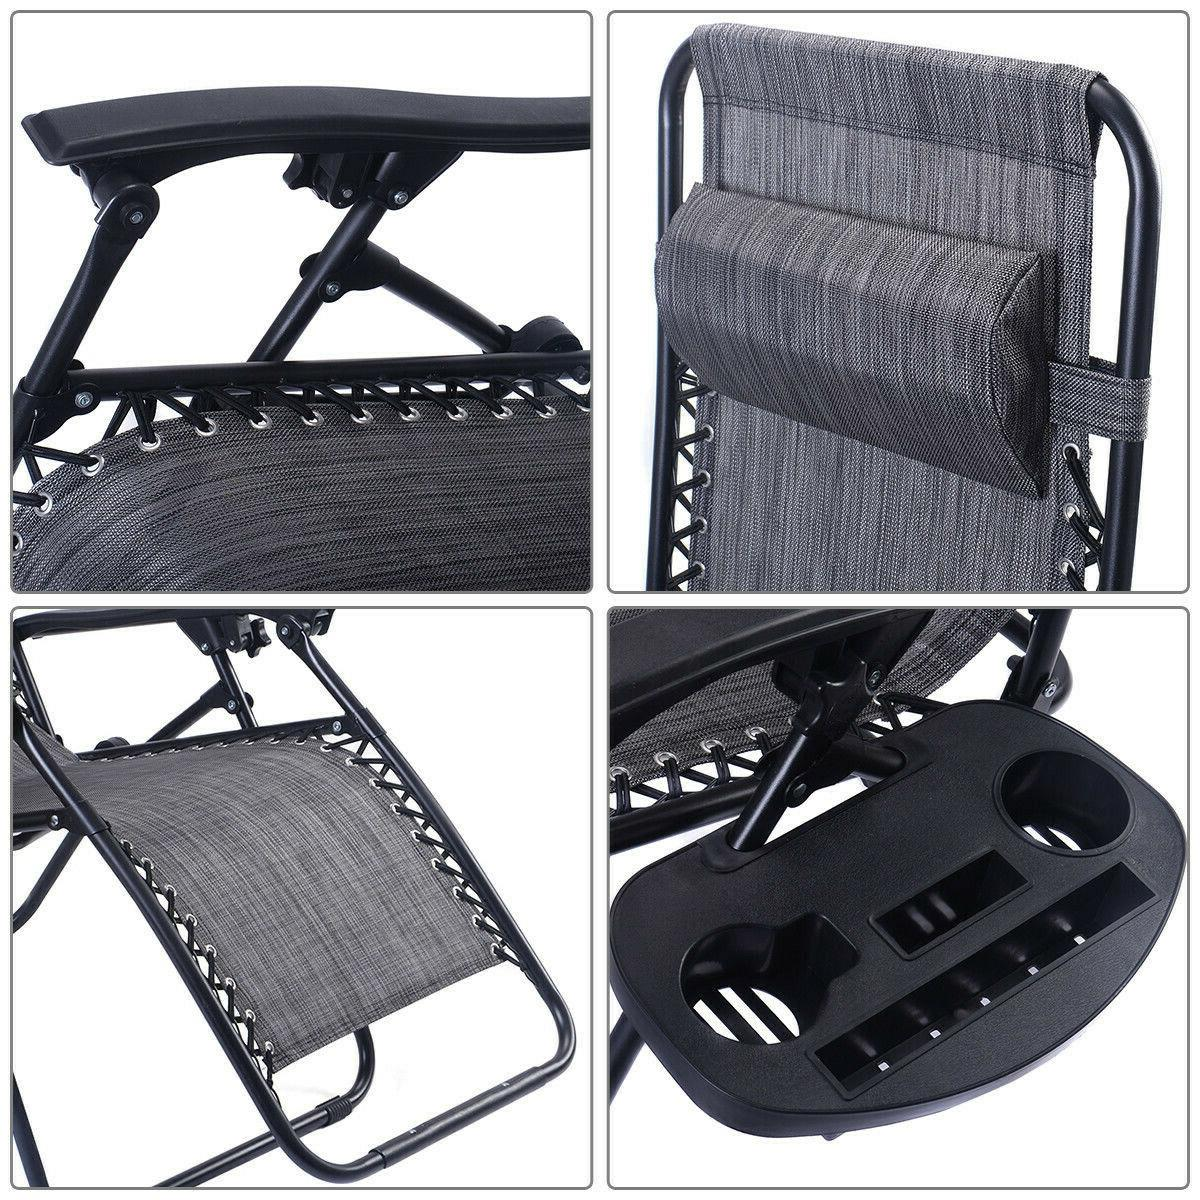 Folding Chaise Chairs Lounge Patio Outdoor Yard